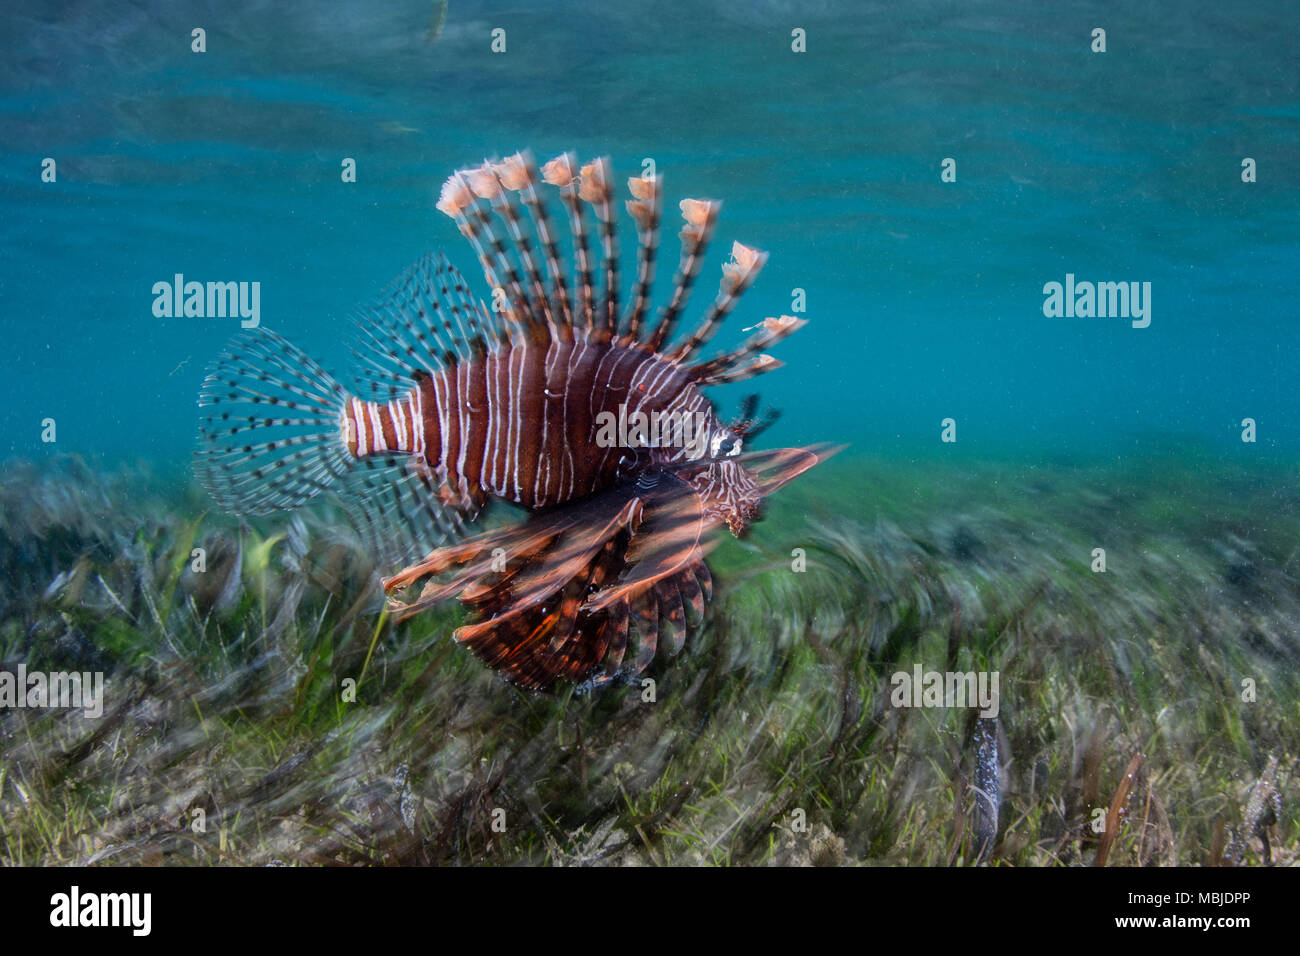 A Lionfish, Pterois volitans, swims over seagrass in the Banda Sea. This region is in the Coral Triangle and has high marine biodiversity. Stock Photo